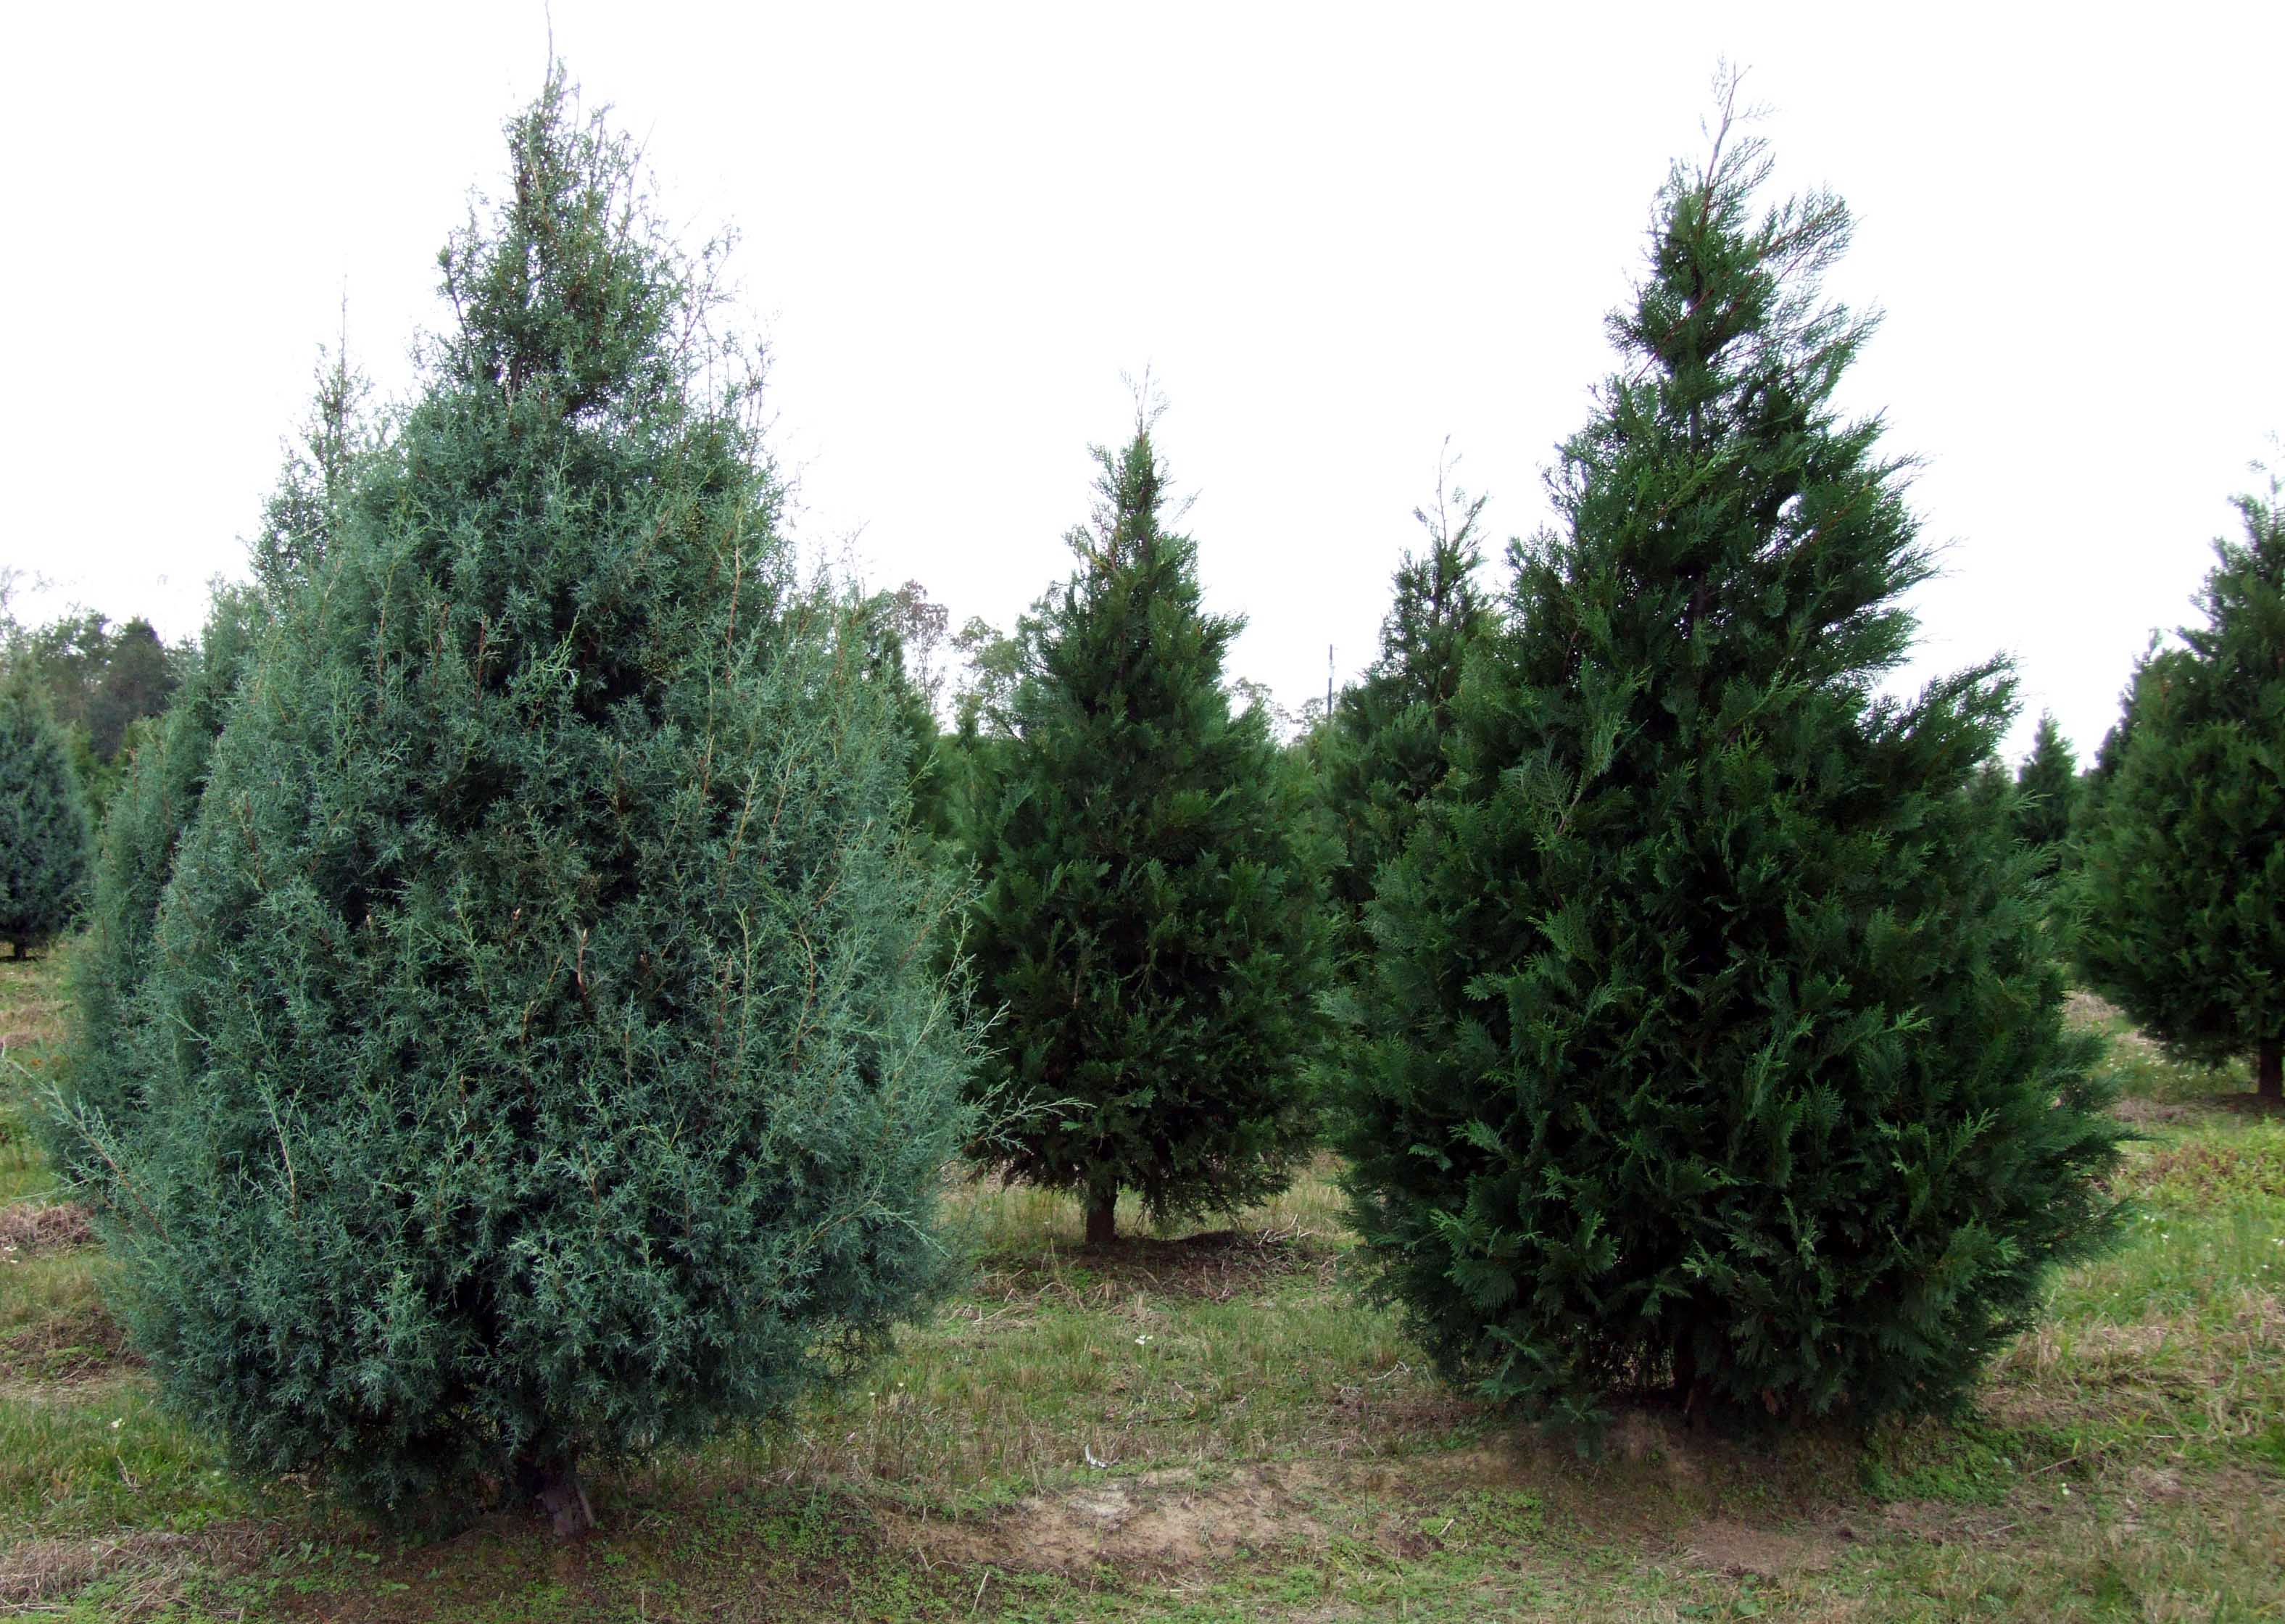 Expert Offers Tips On Choosing Caring For Holiday Tree